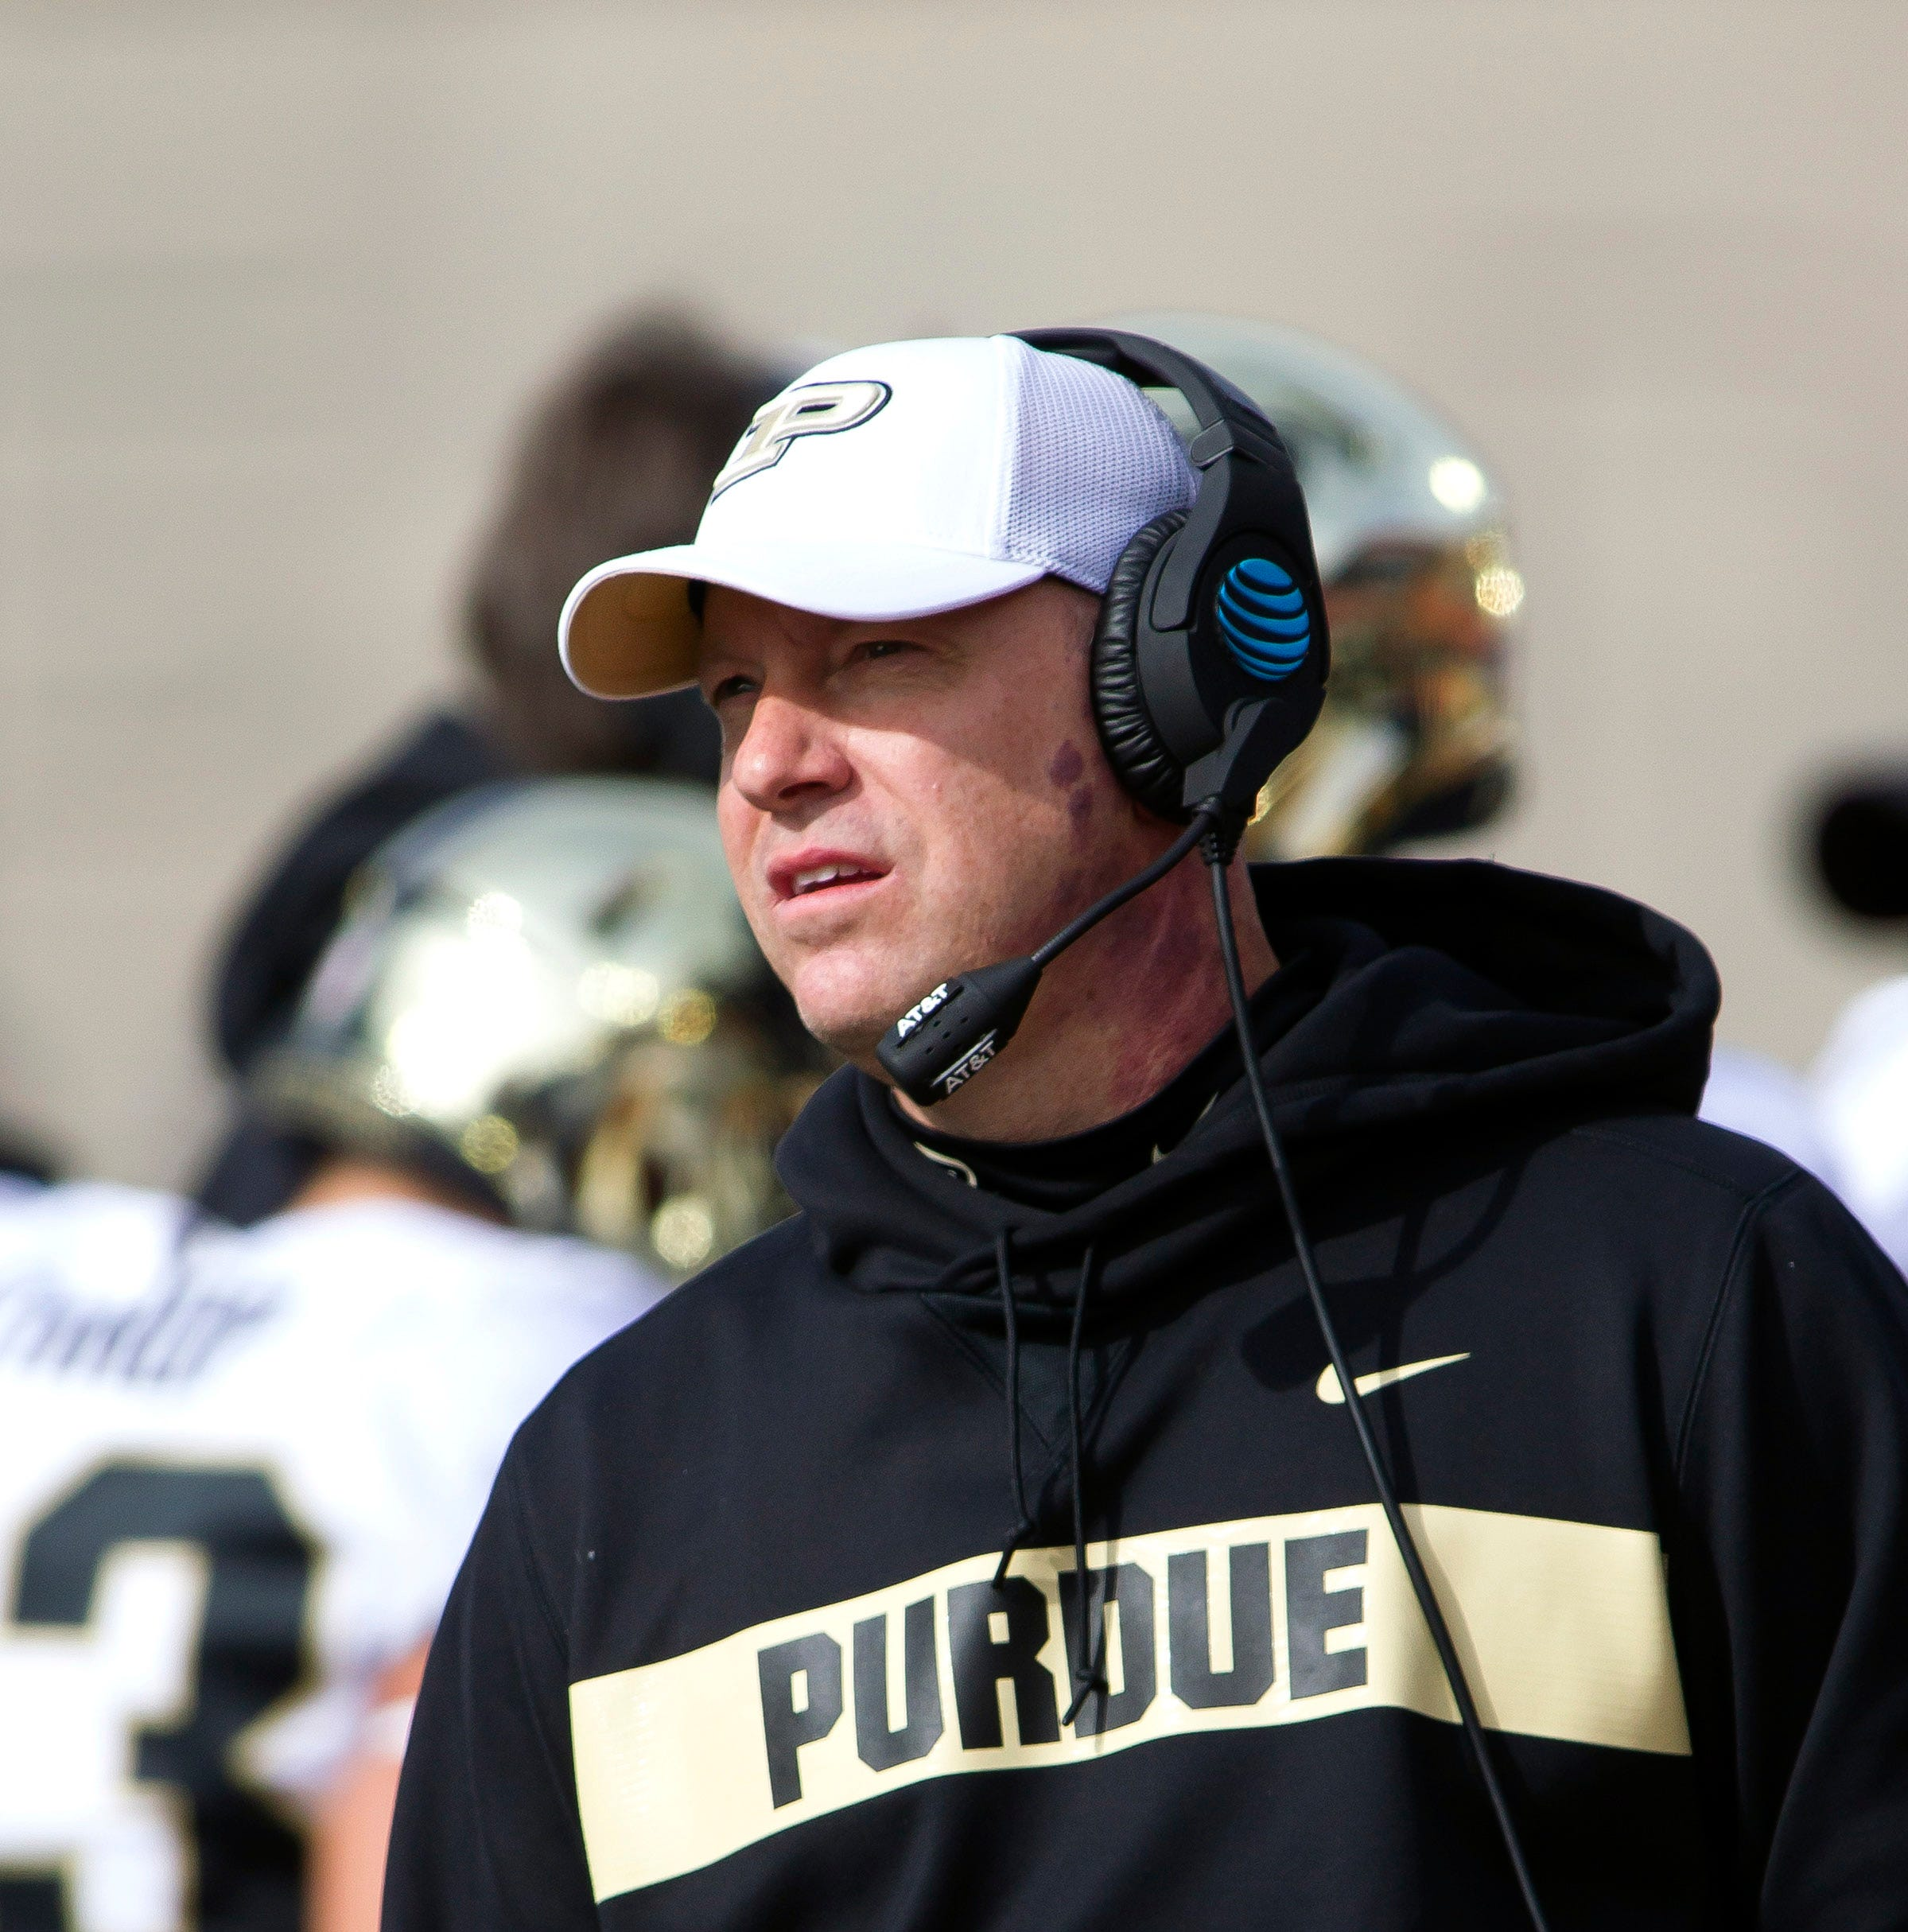 If Jeff Brohm goes to Louisville football, he'd break hearts at Purdue